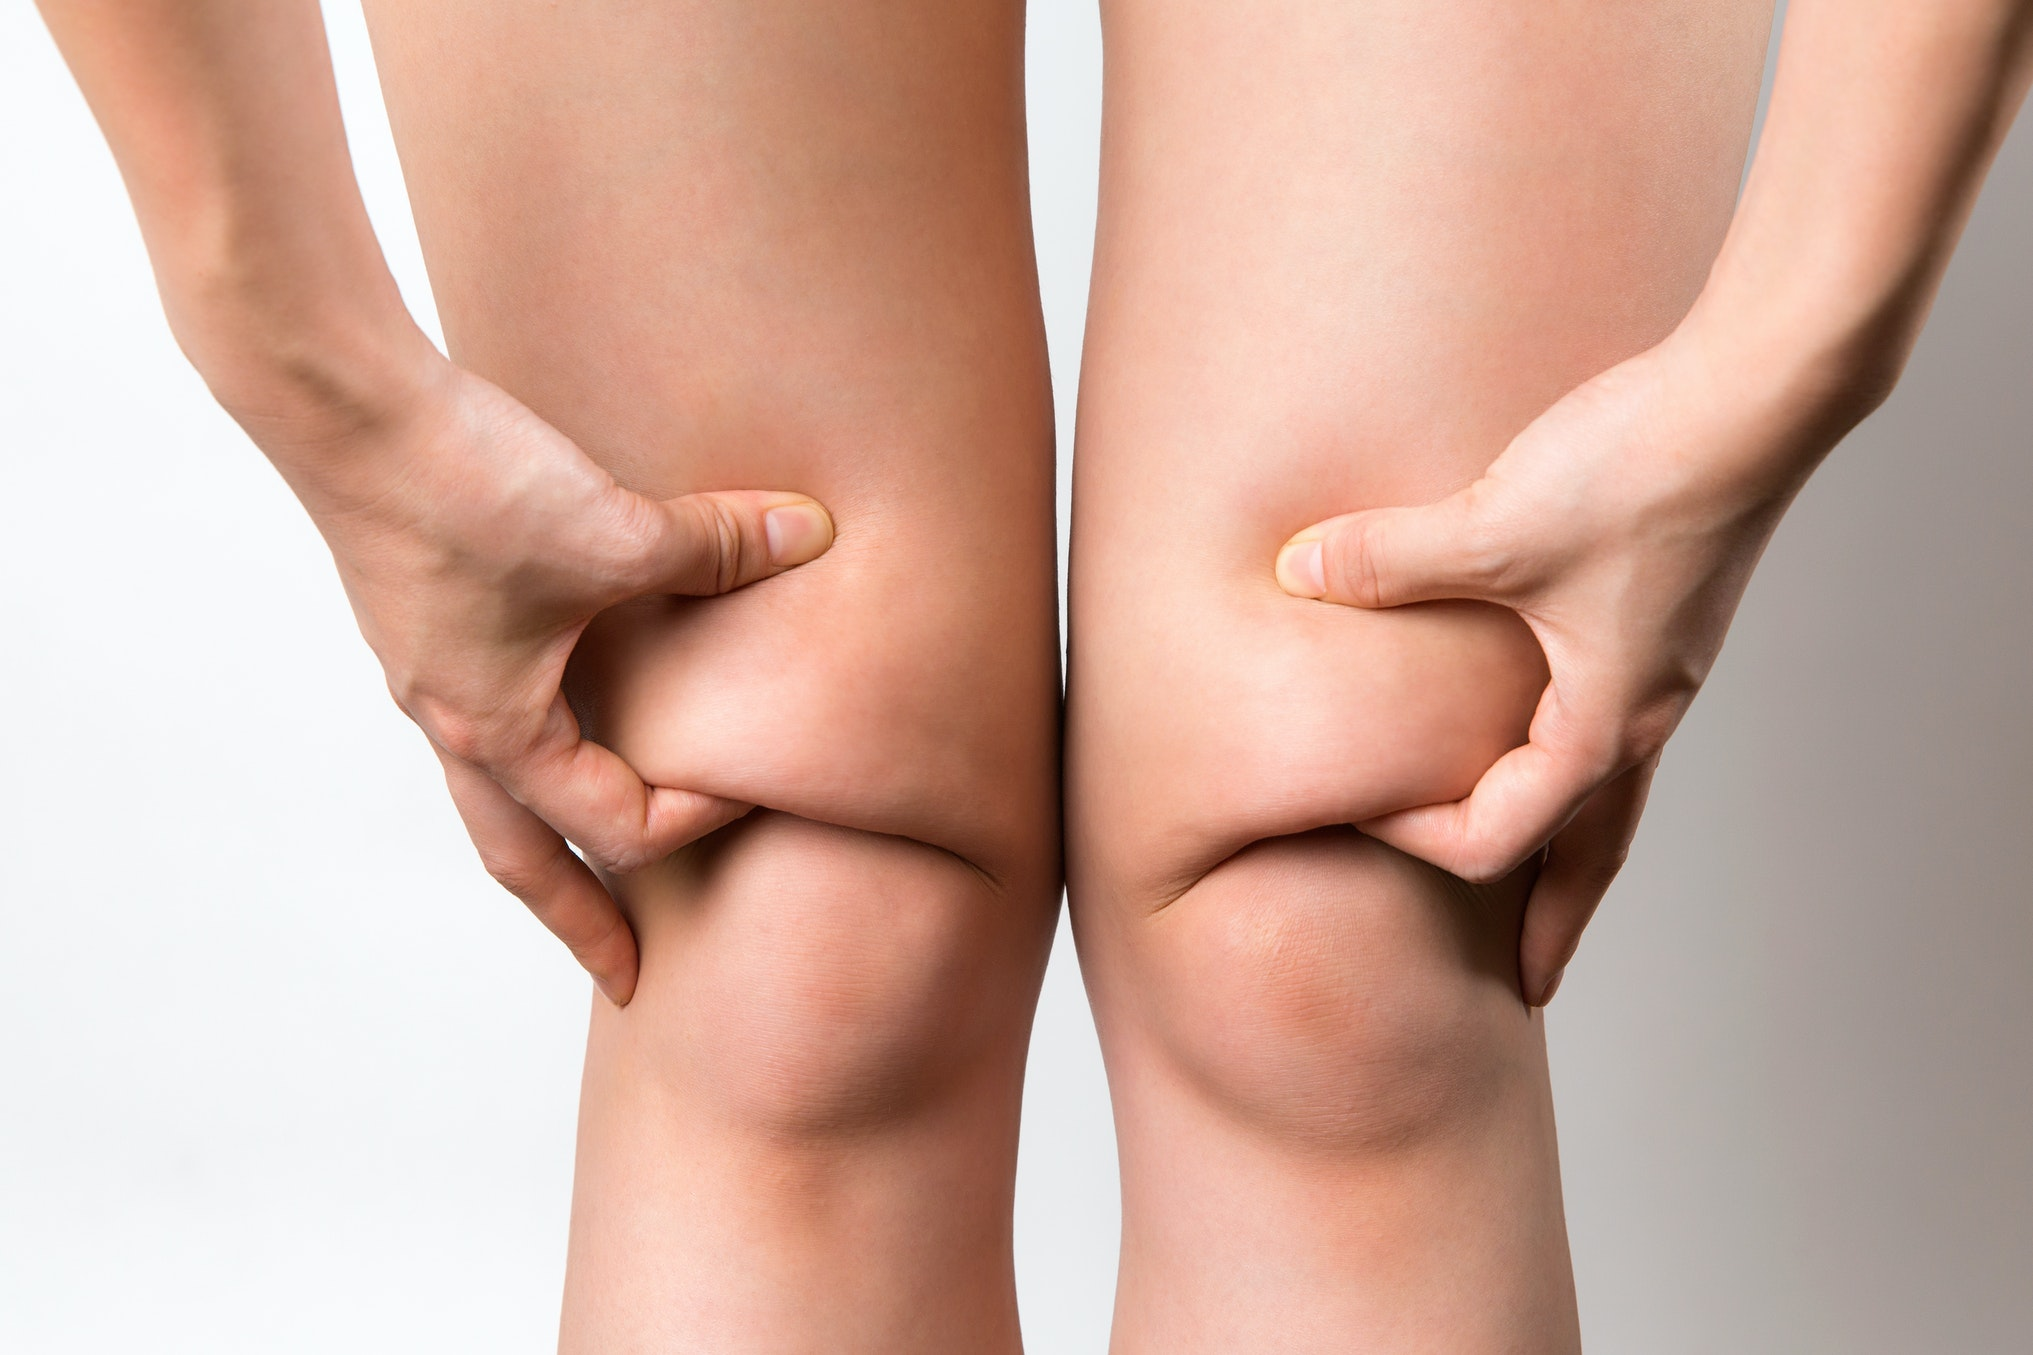 5 Easy Ways to Lose Knee Fat